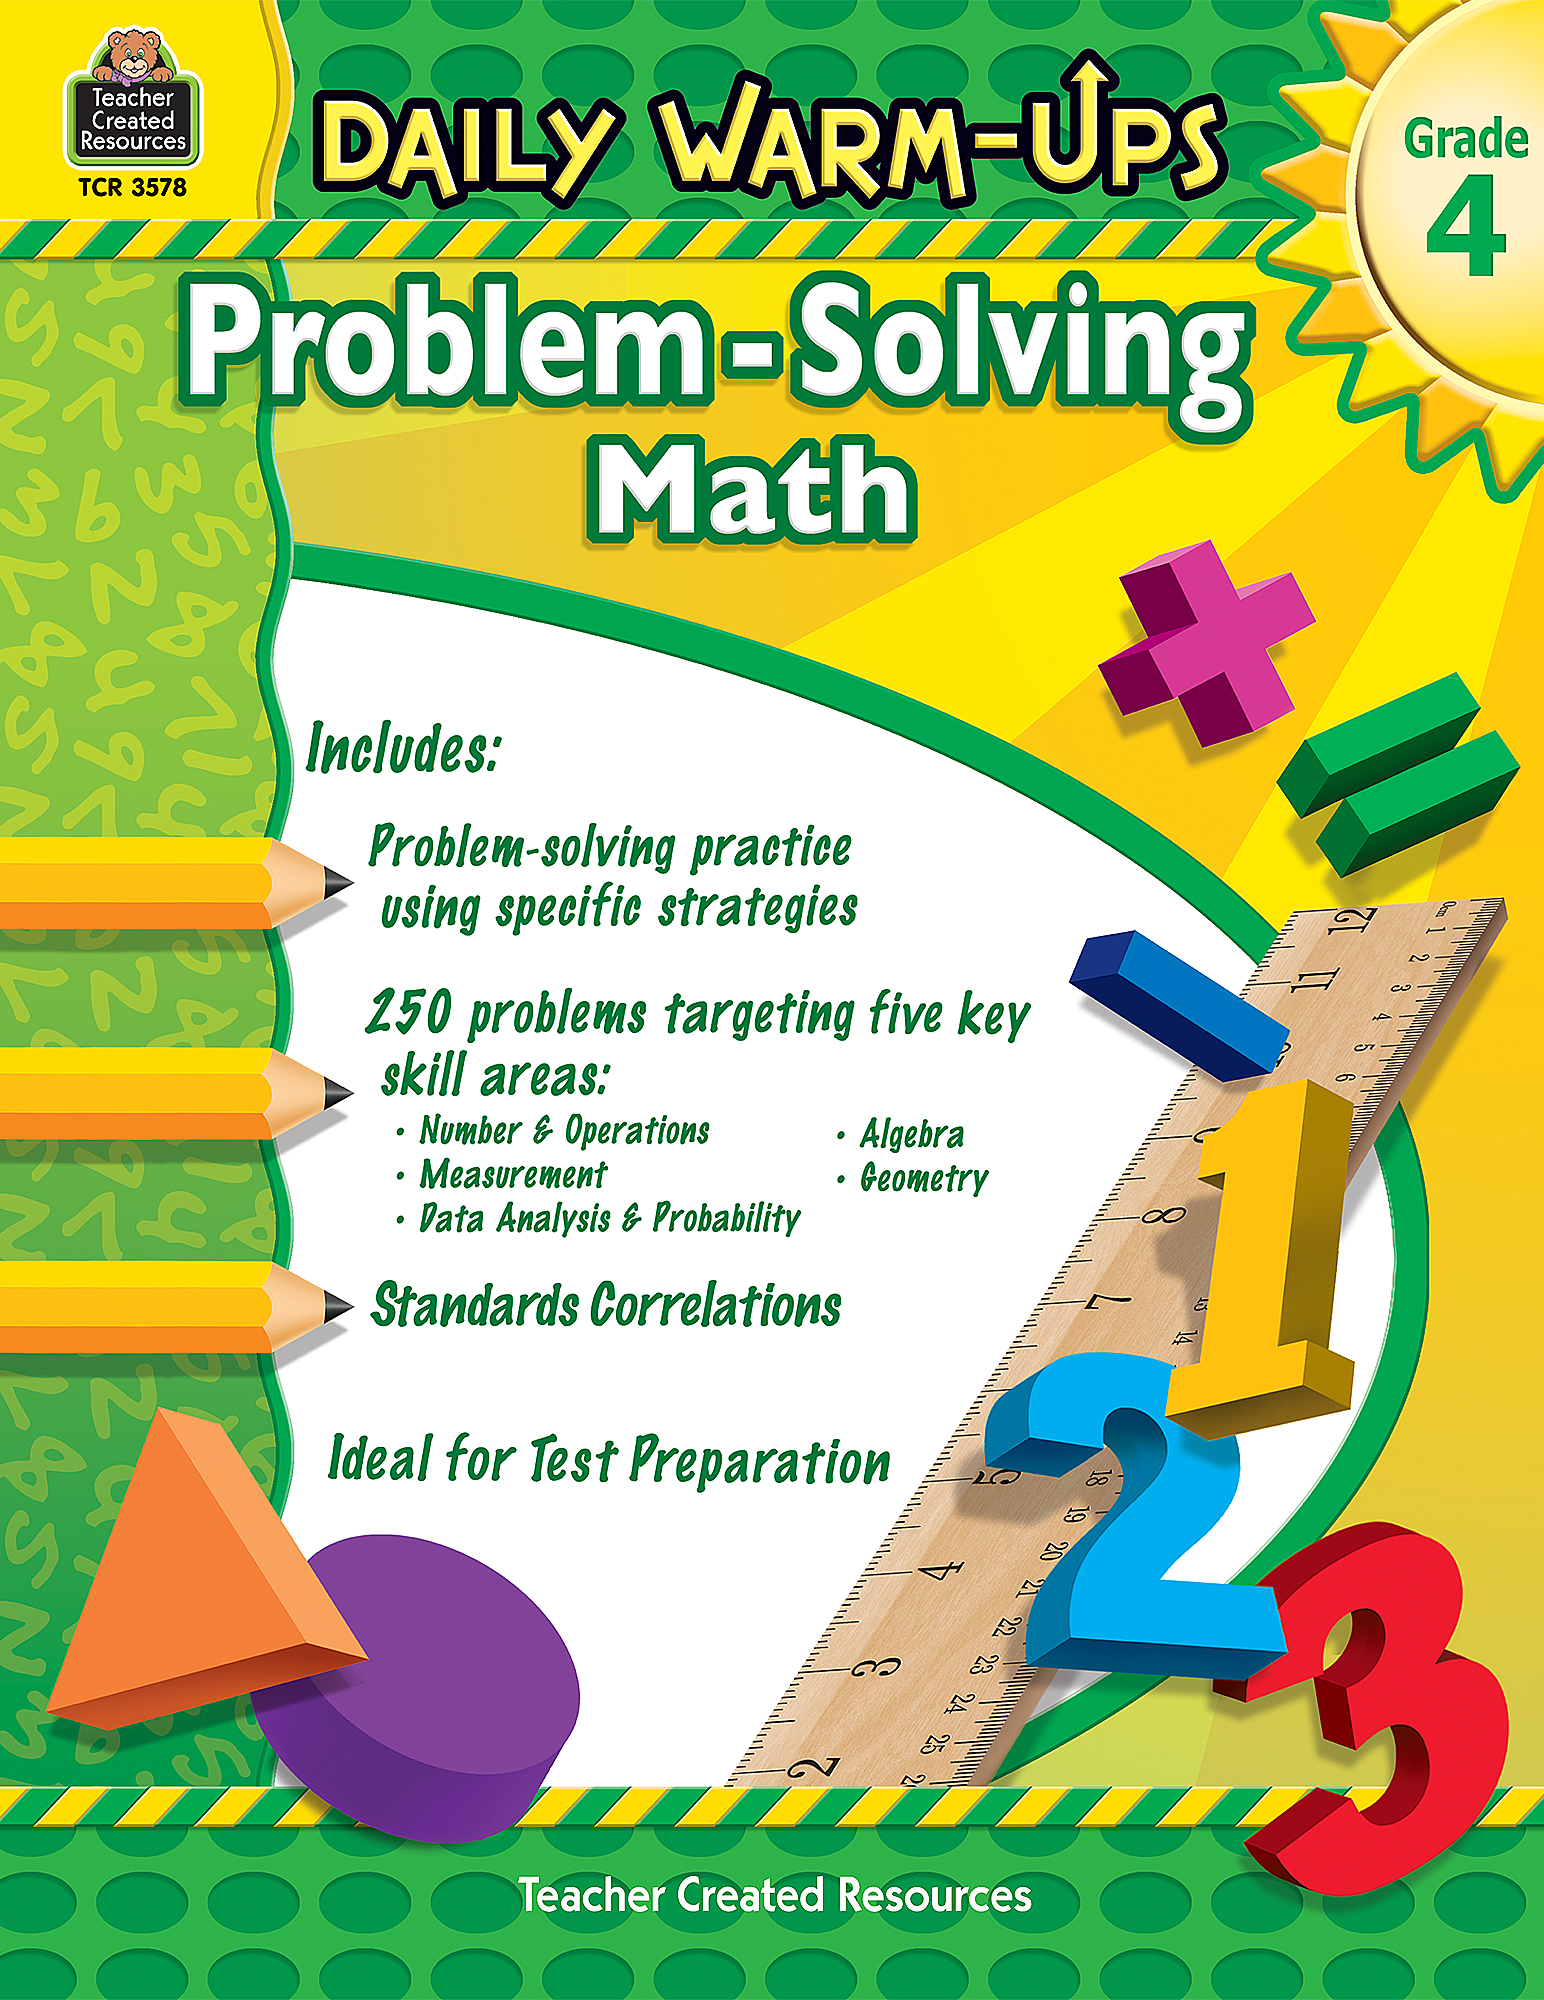 Worksheet Math Problem Solving Grade 3 daily warm ups problem solving math grade 3 tcr3577 products 18 99 4